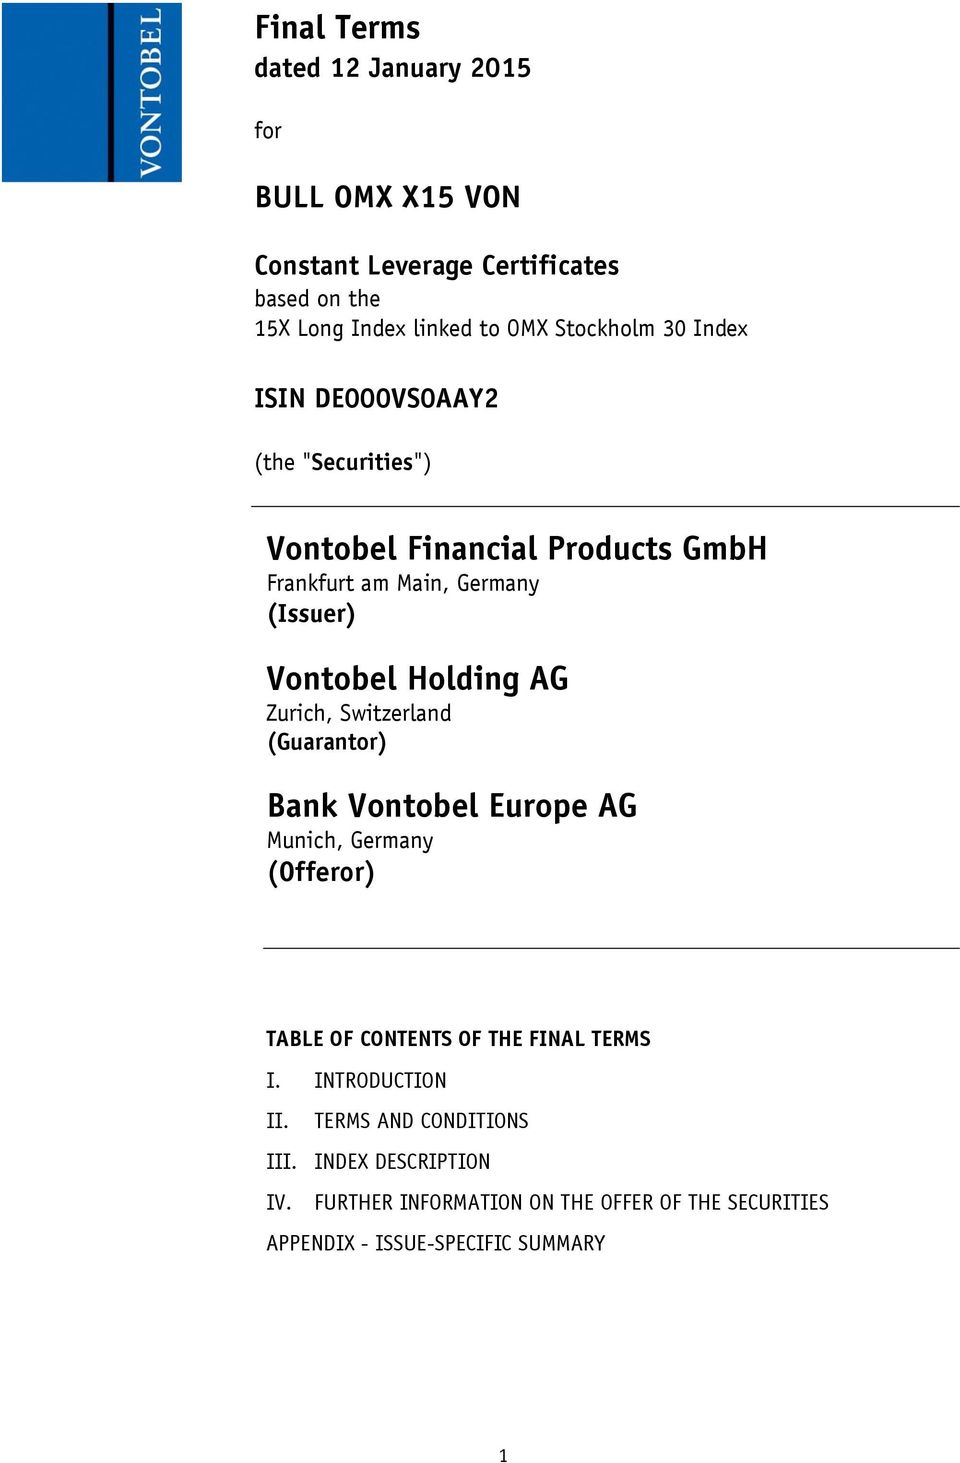 Holding AG Zurich, Switzerland (Guarantor) Bank Vontobel Europe AG Munich, Germany (Offeror) TABLE OF CONTENTS OF THE FINAL TERMS I.